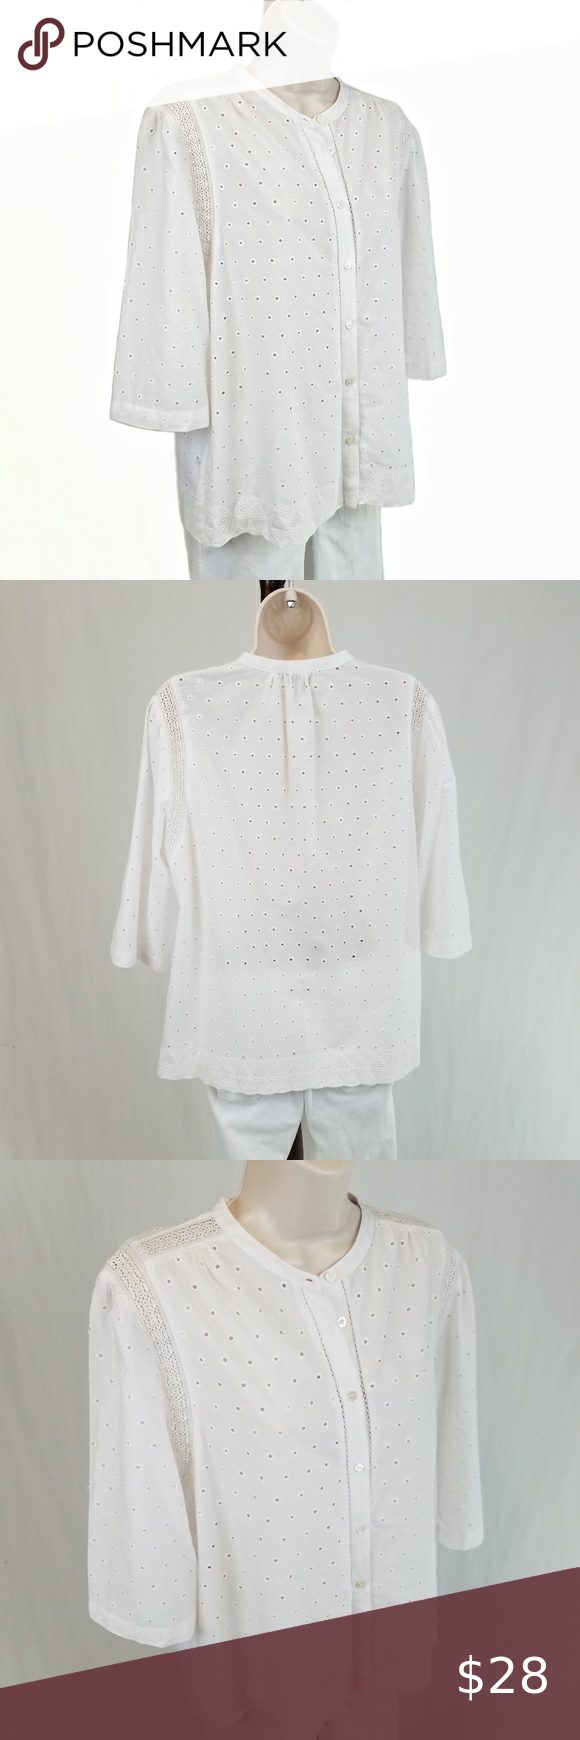 J. Crew Eyelet button-up shirt / top white 14 Half sleeve crew neck button…